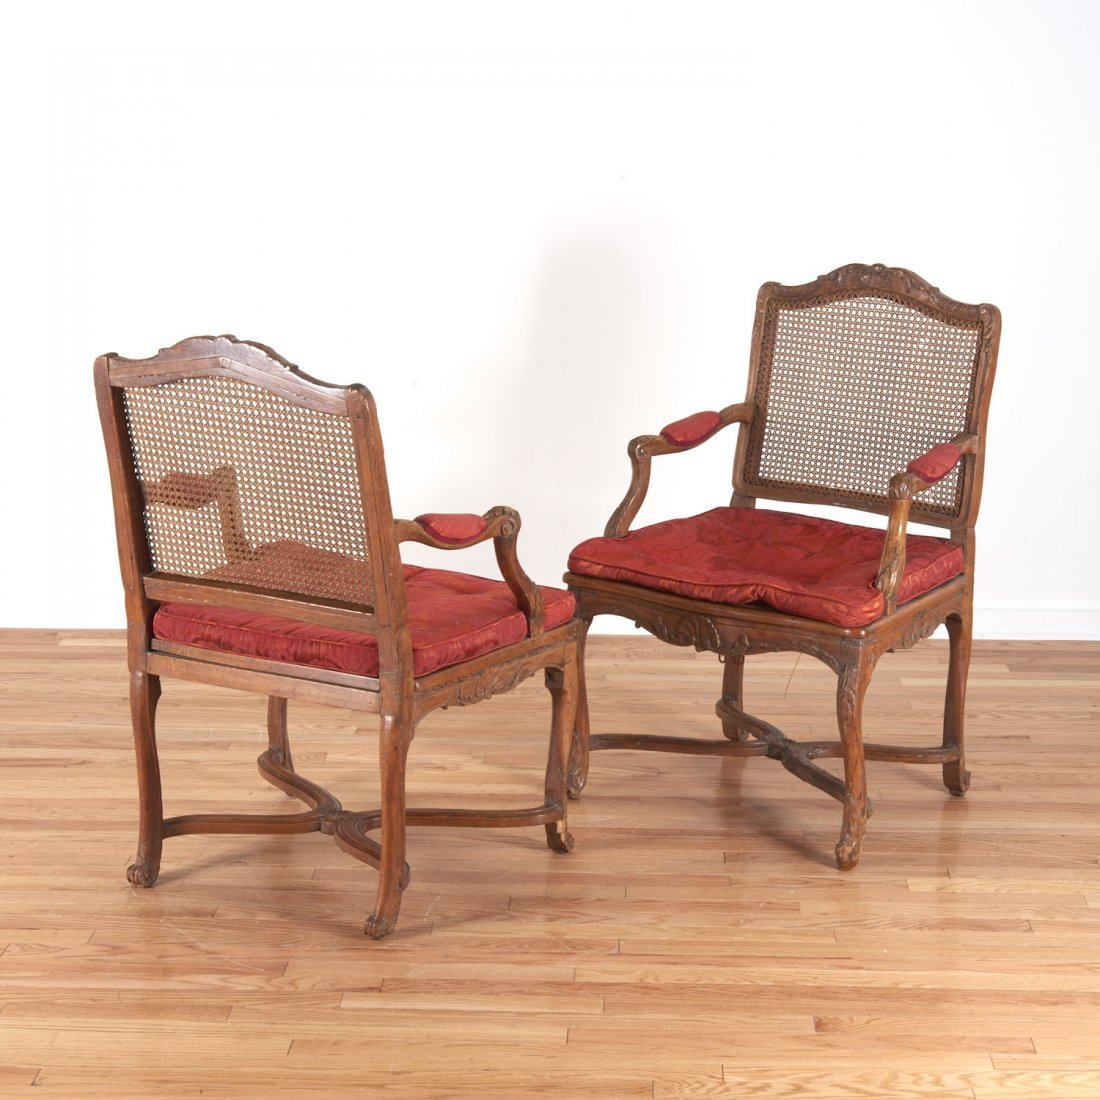 Pair Regence carved walnut open armchairs - 3